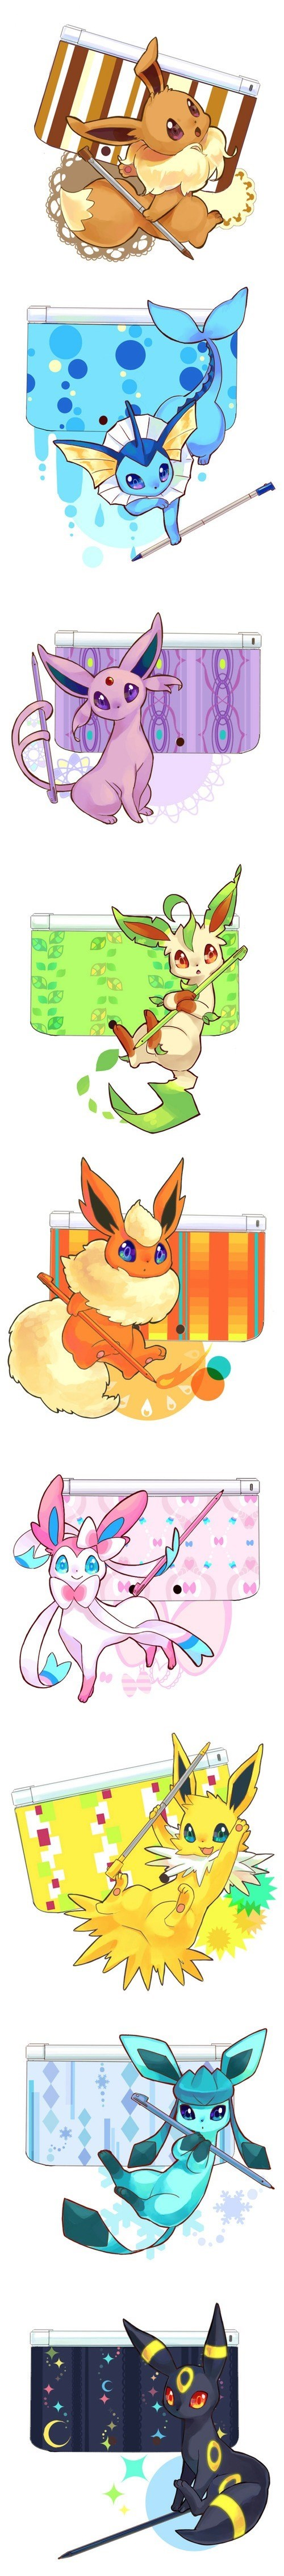 Imagine If Your 3DS Could be Eeveelution Themed